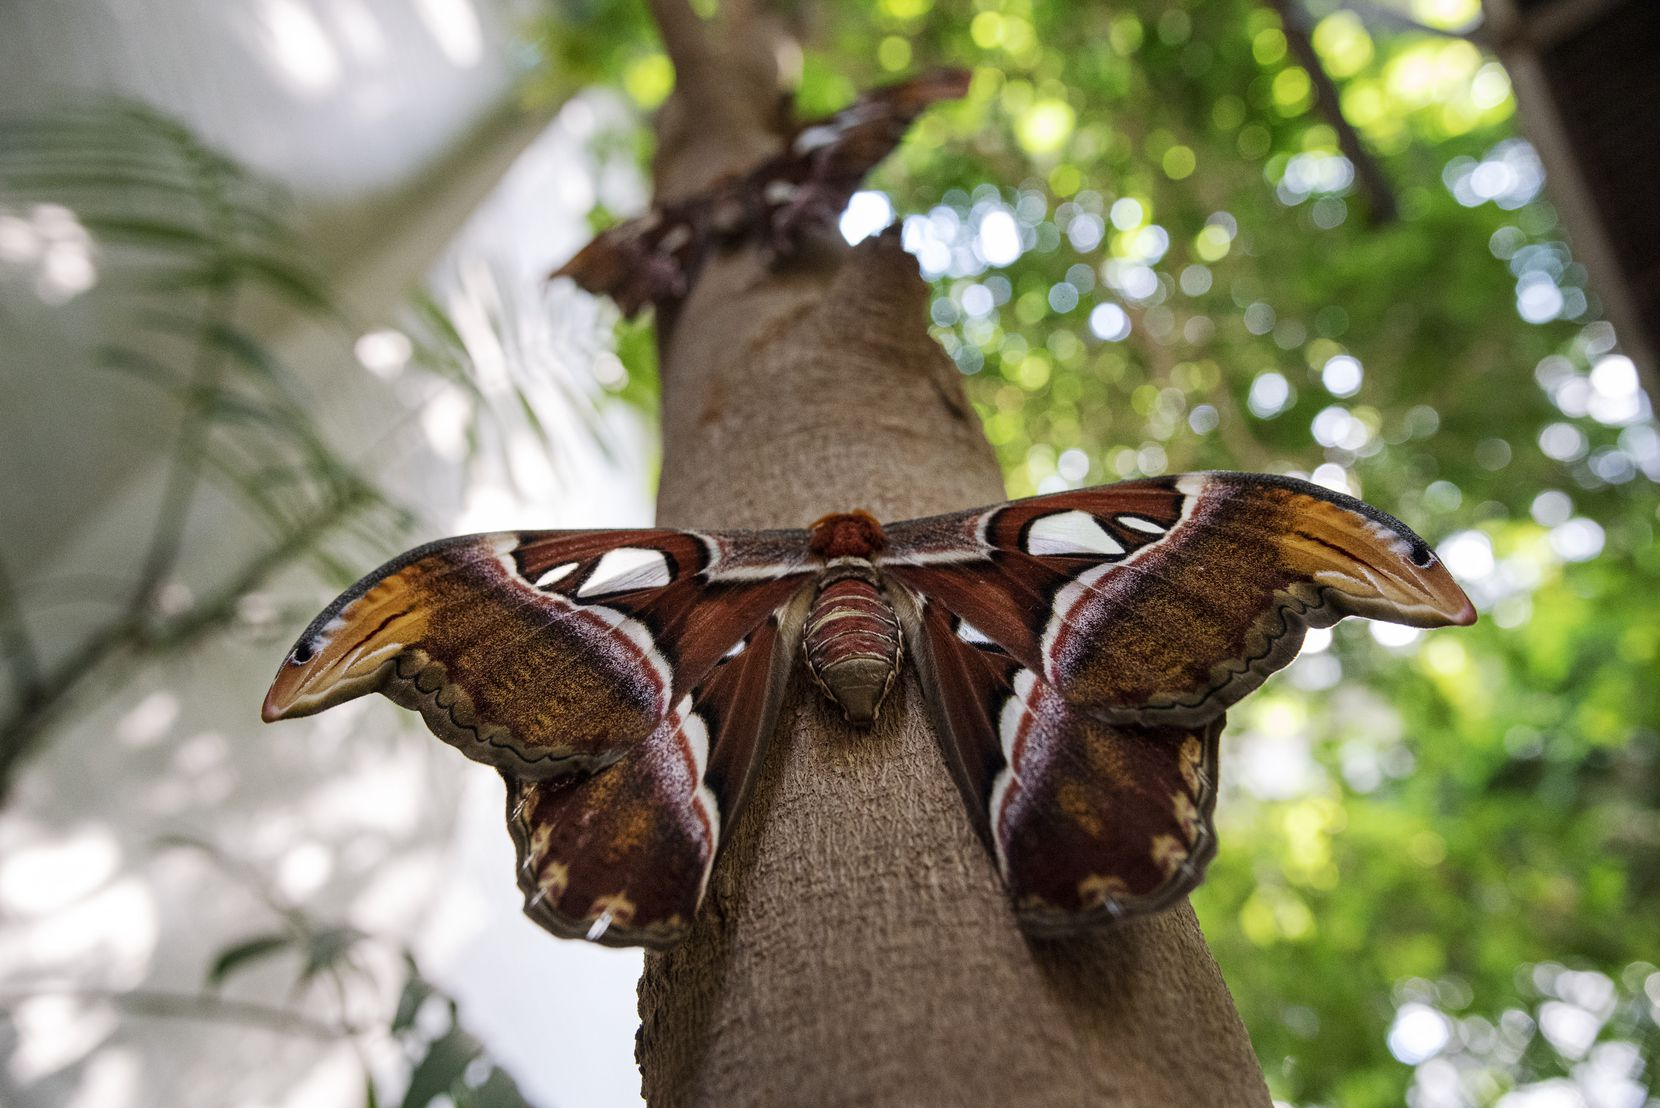 Atlas moth on a tree inside the butterfly house at the Texas Discovery Gardens at Fair Park.